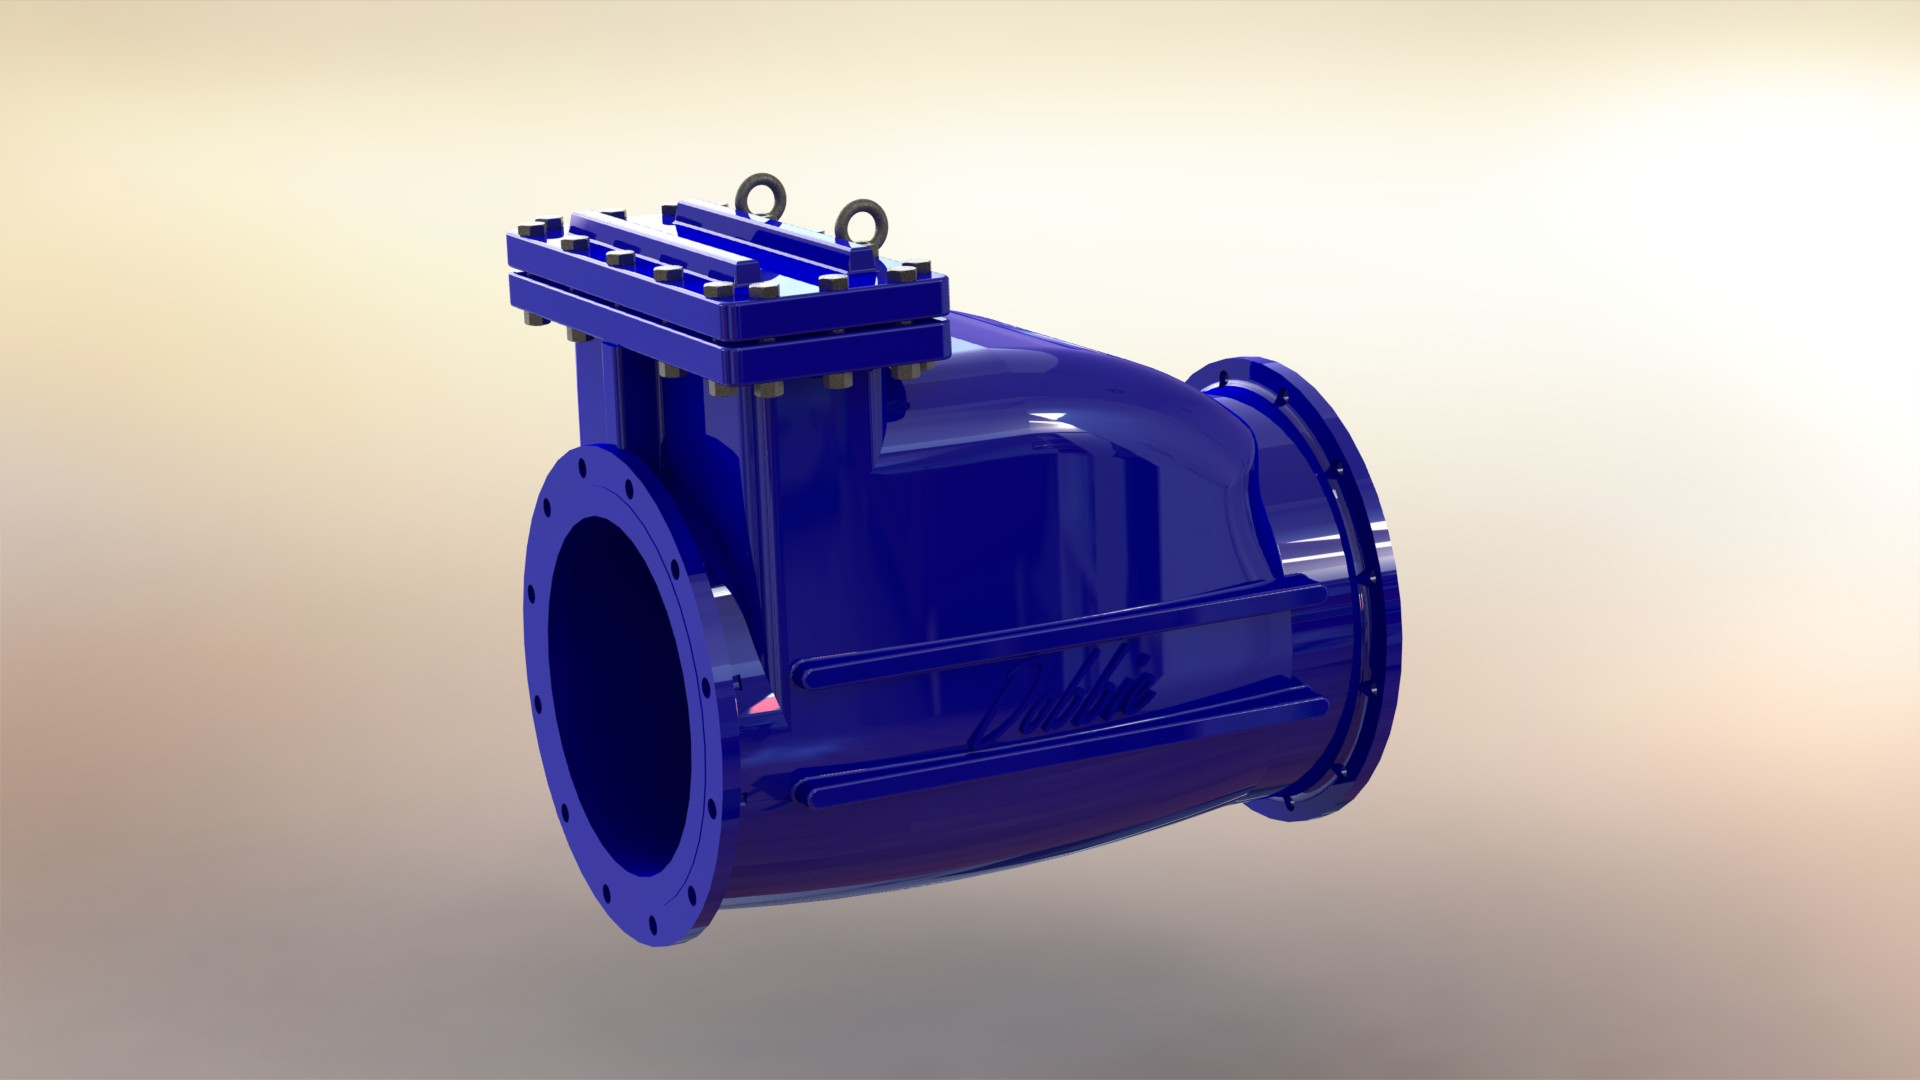 SolidWorks Parts